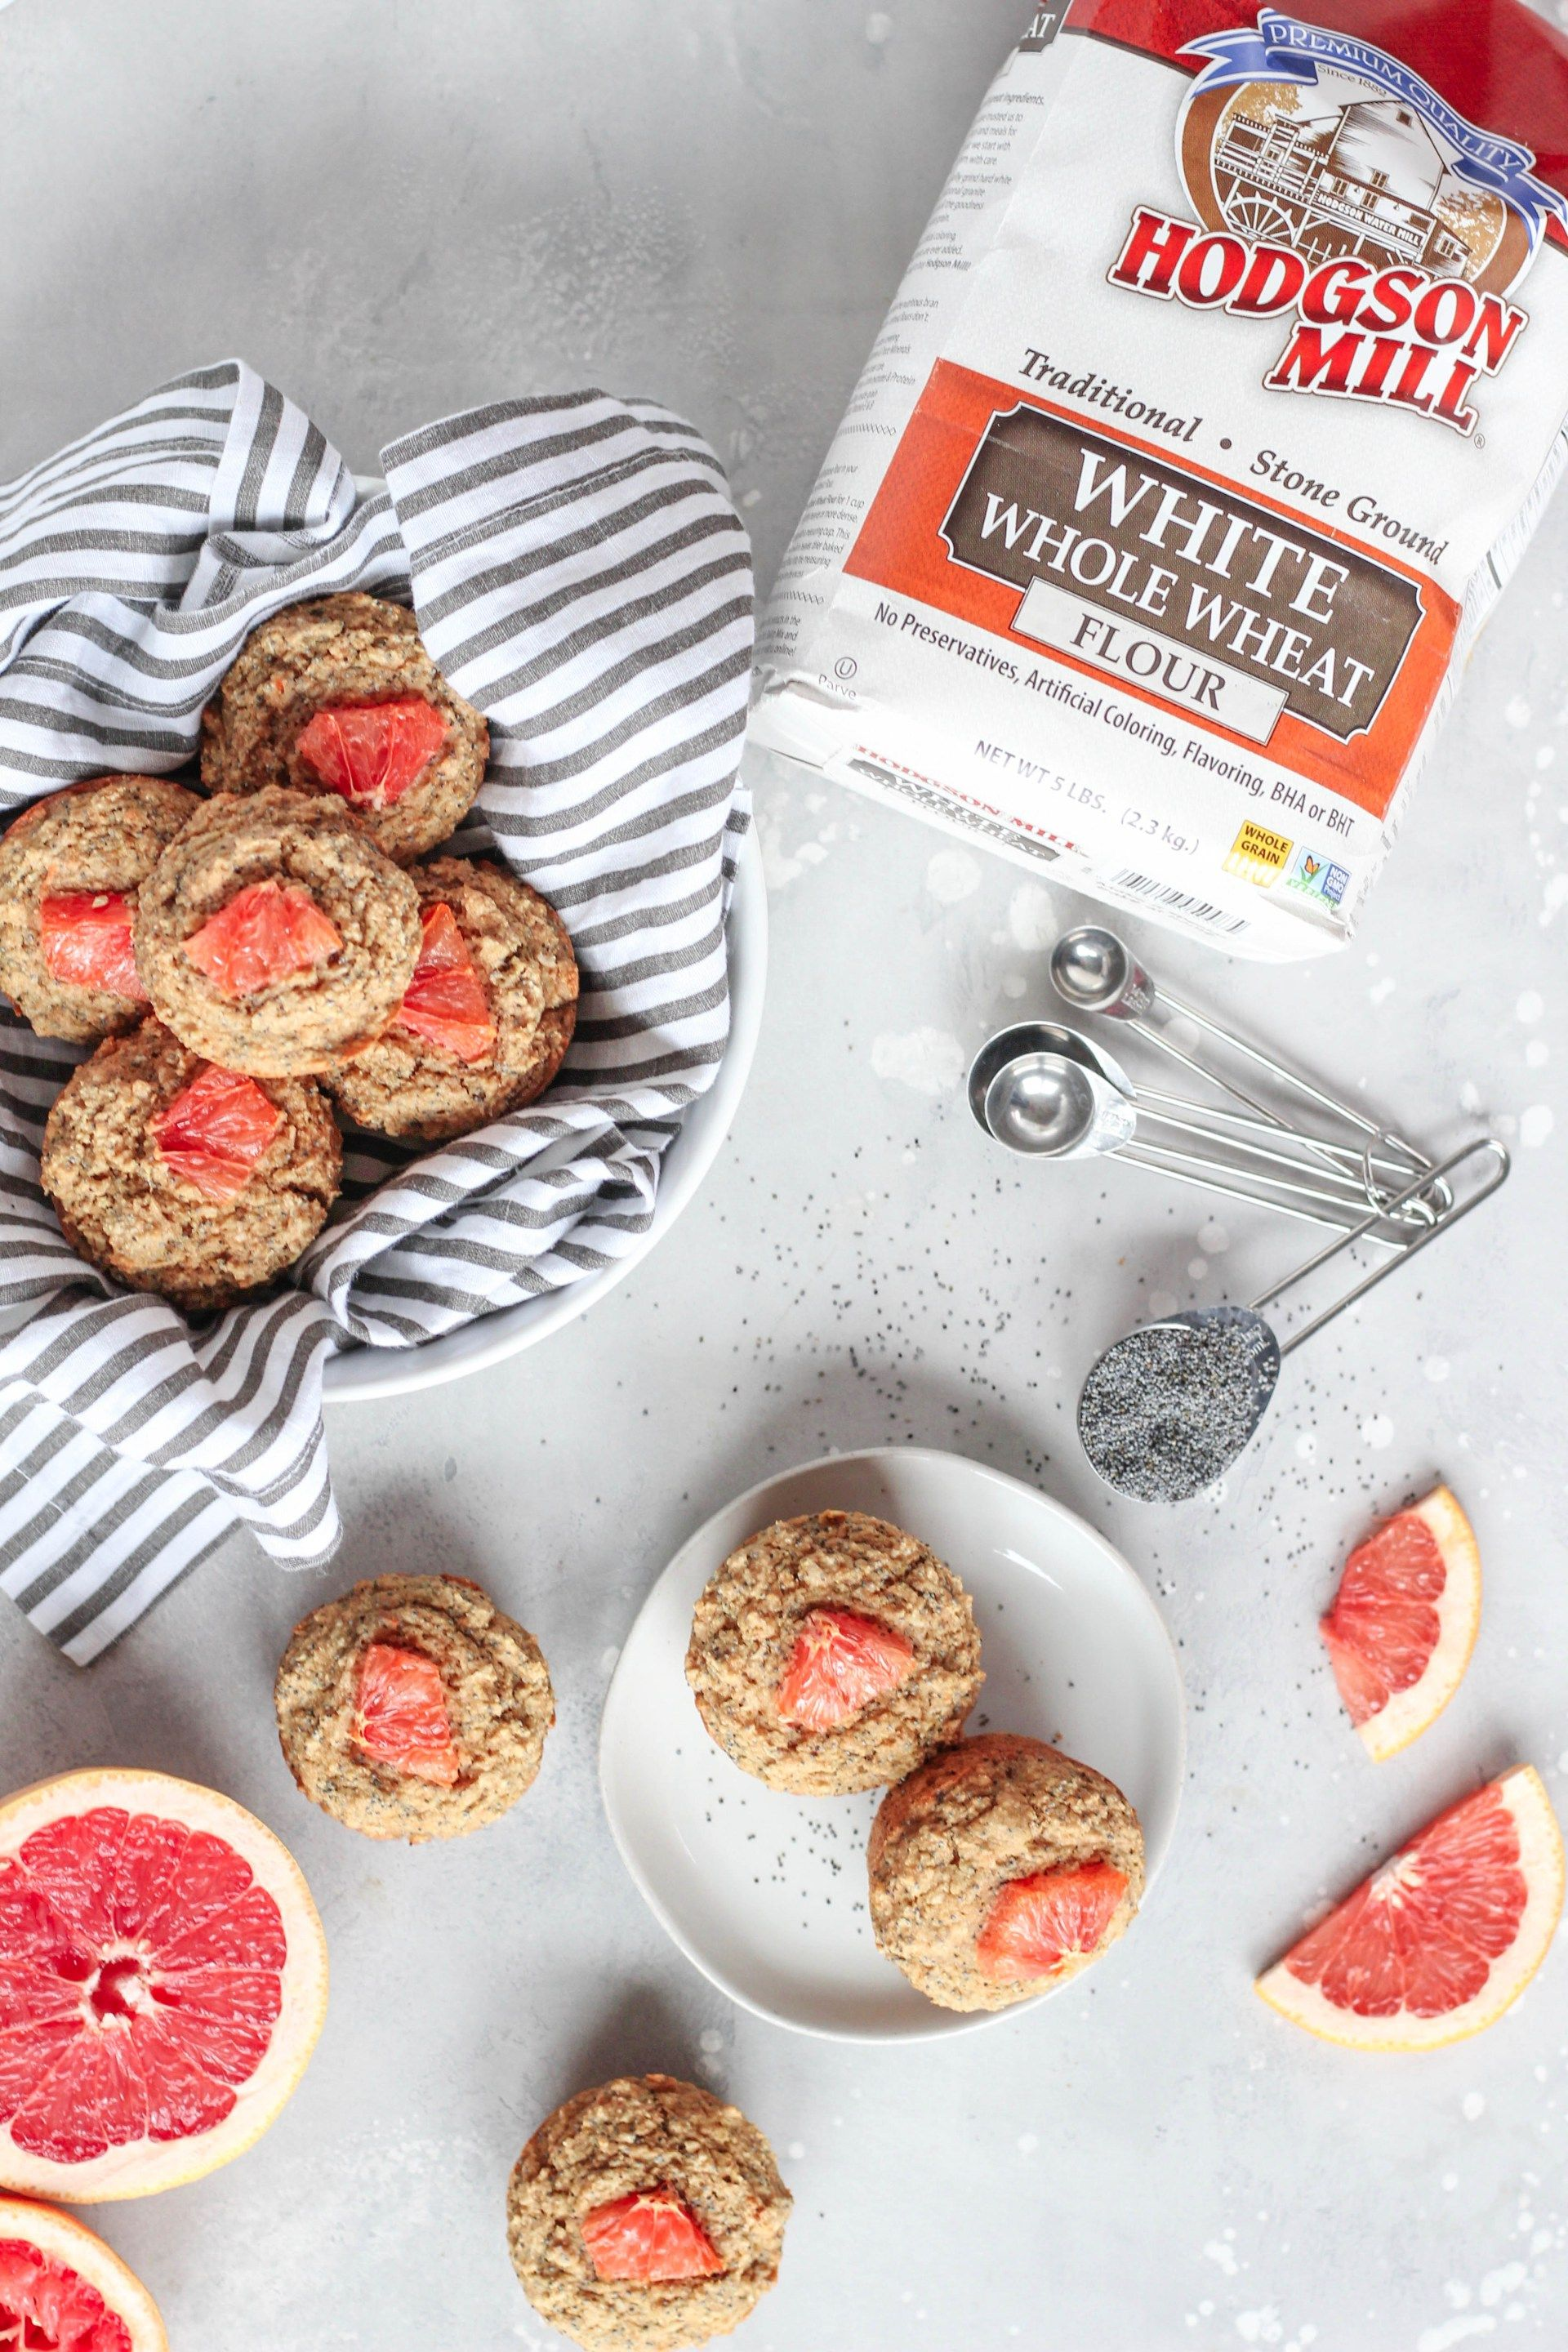 Whole Wheat Grapefruit Poppyseed Muffins